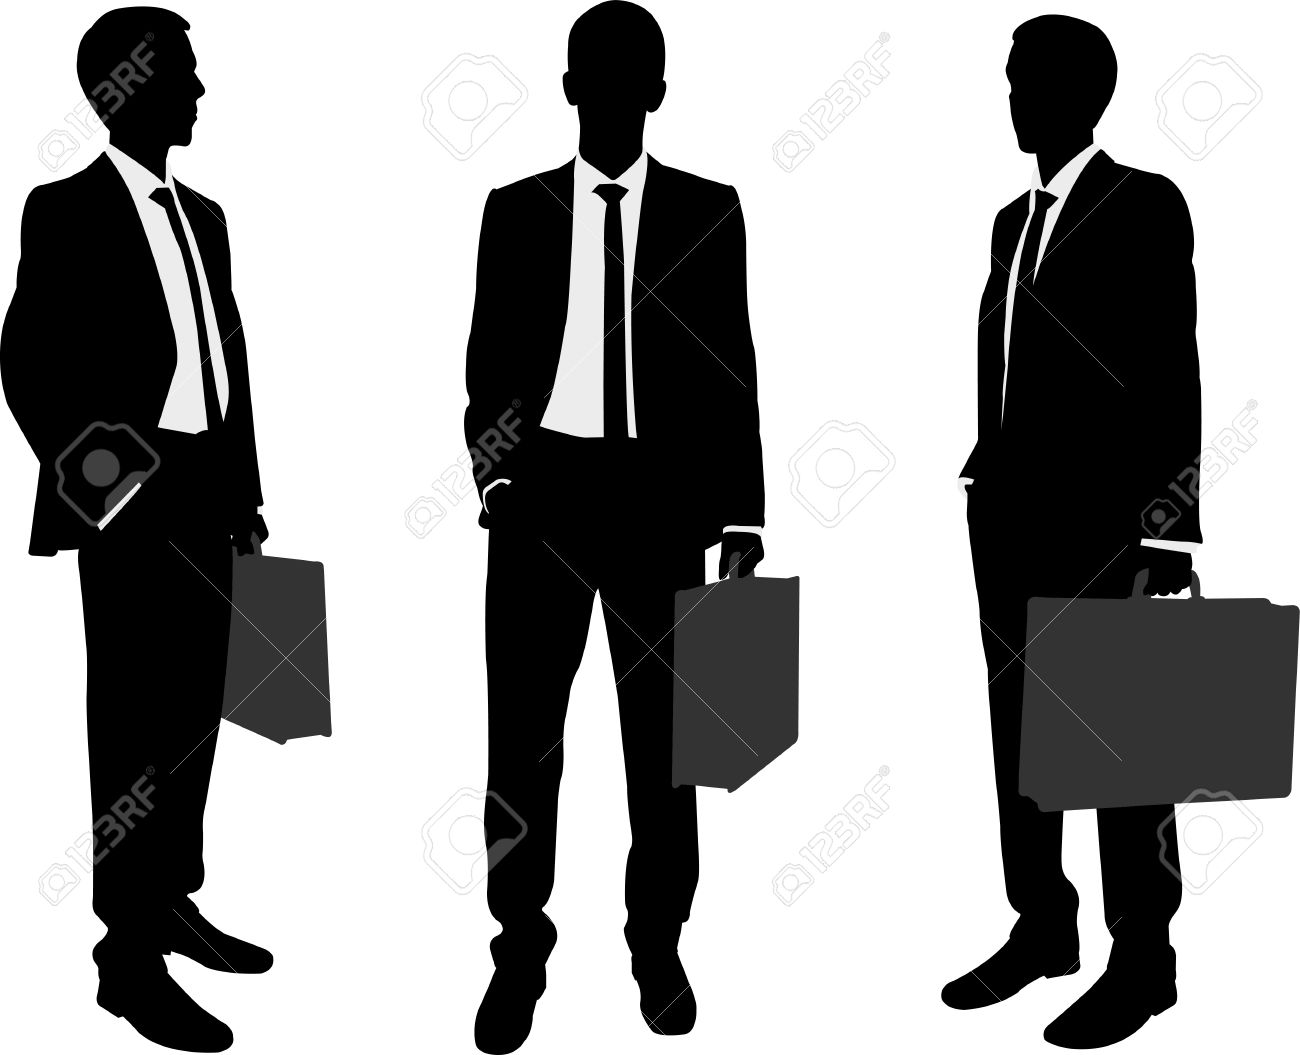 businessman holding briefcase silhouettes - 22428361